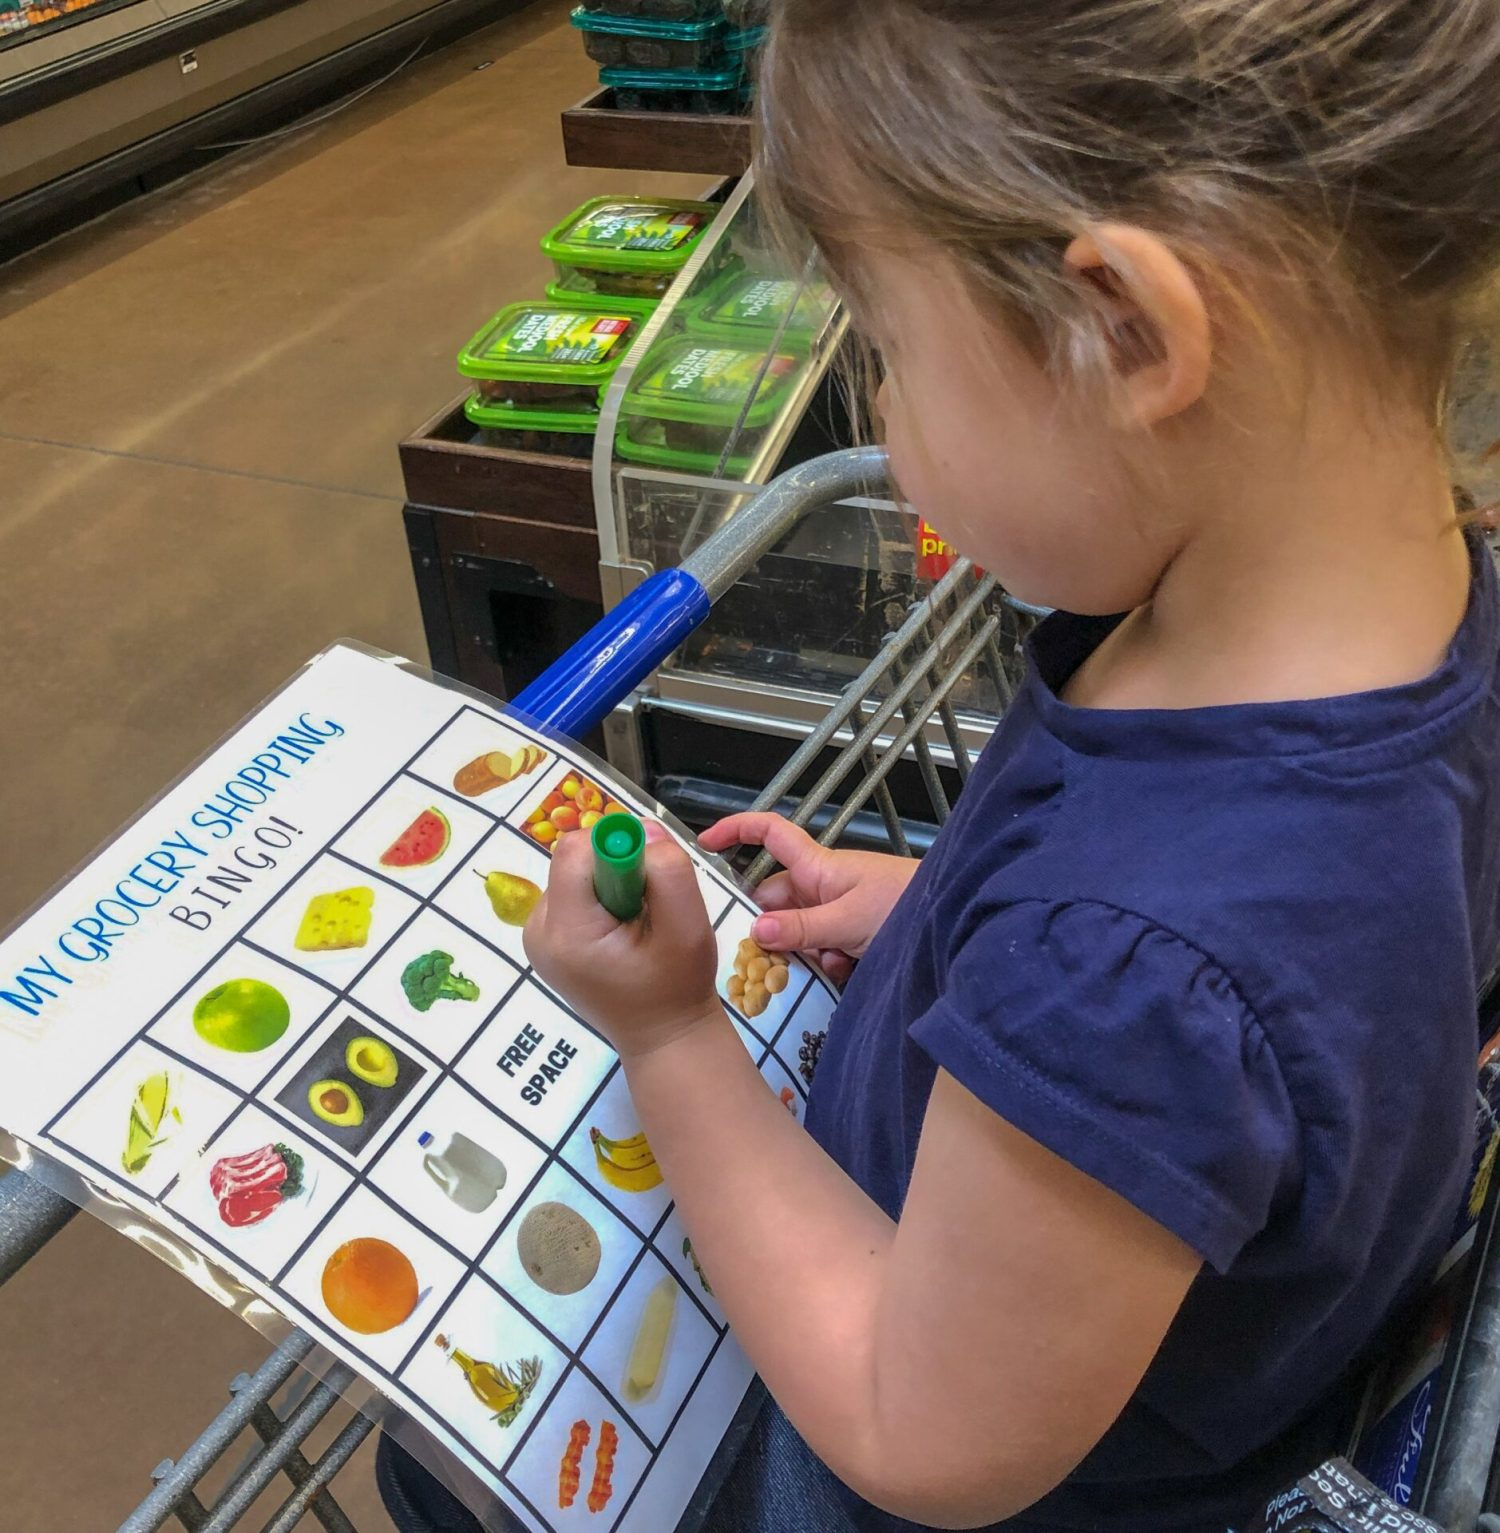 I used to hate taking toddlers to the grocery store, but then I discovered 7 genius ways to keep your toddler entertained at the grocery store you want to start doing now!